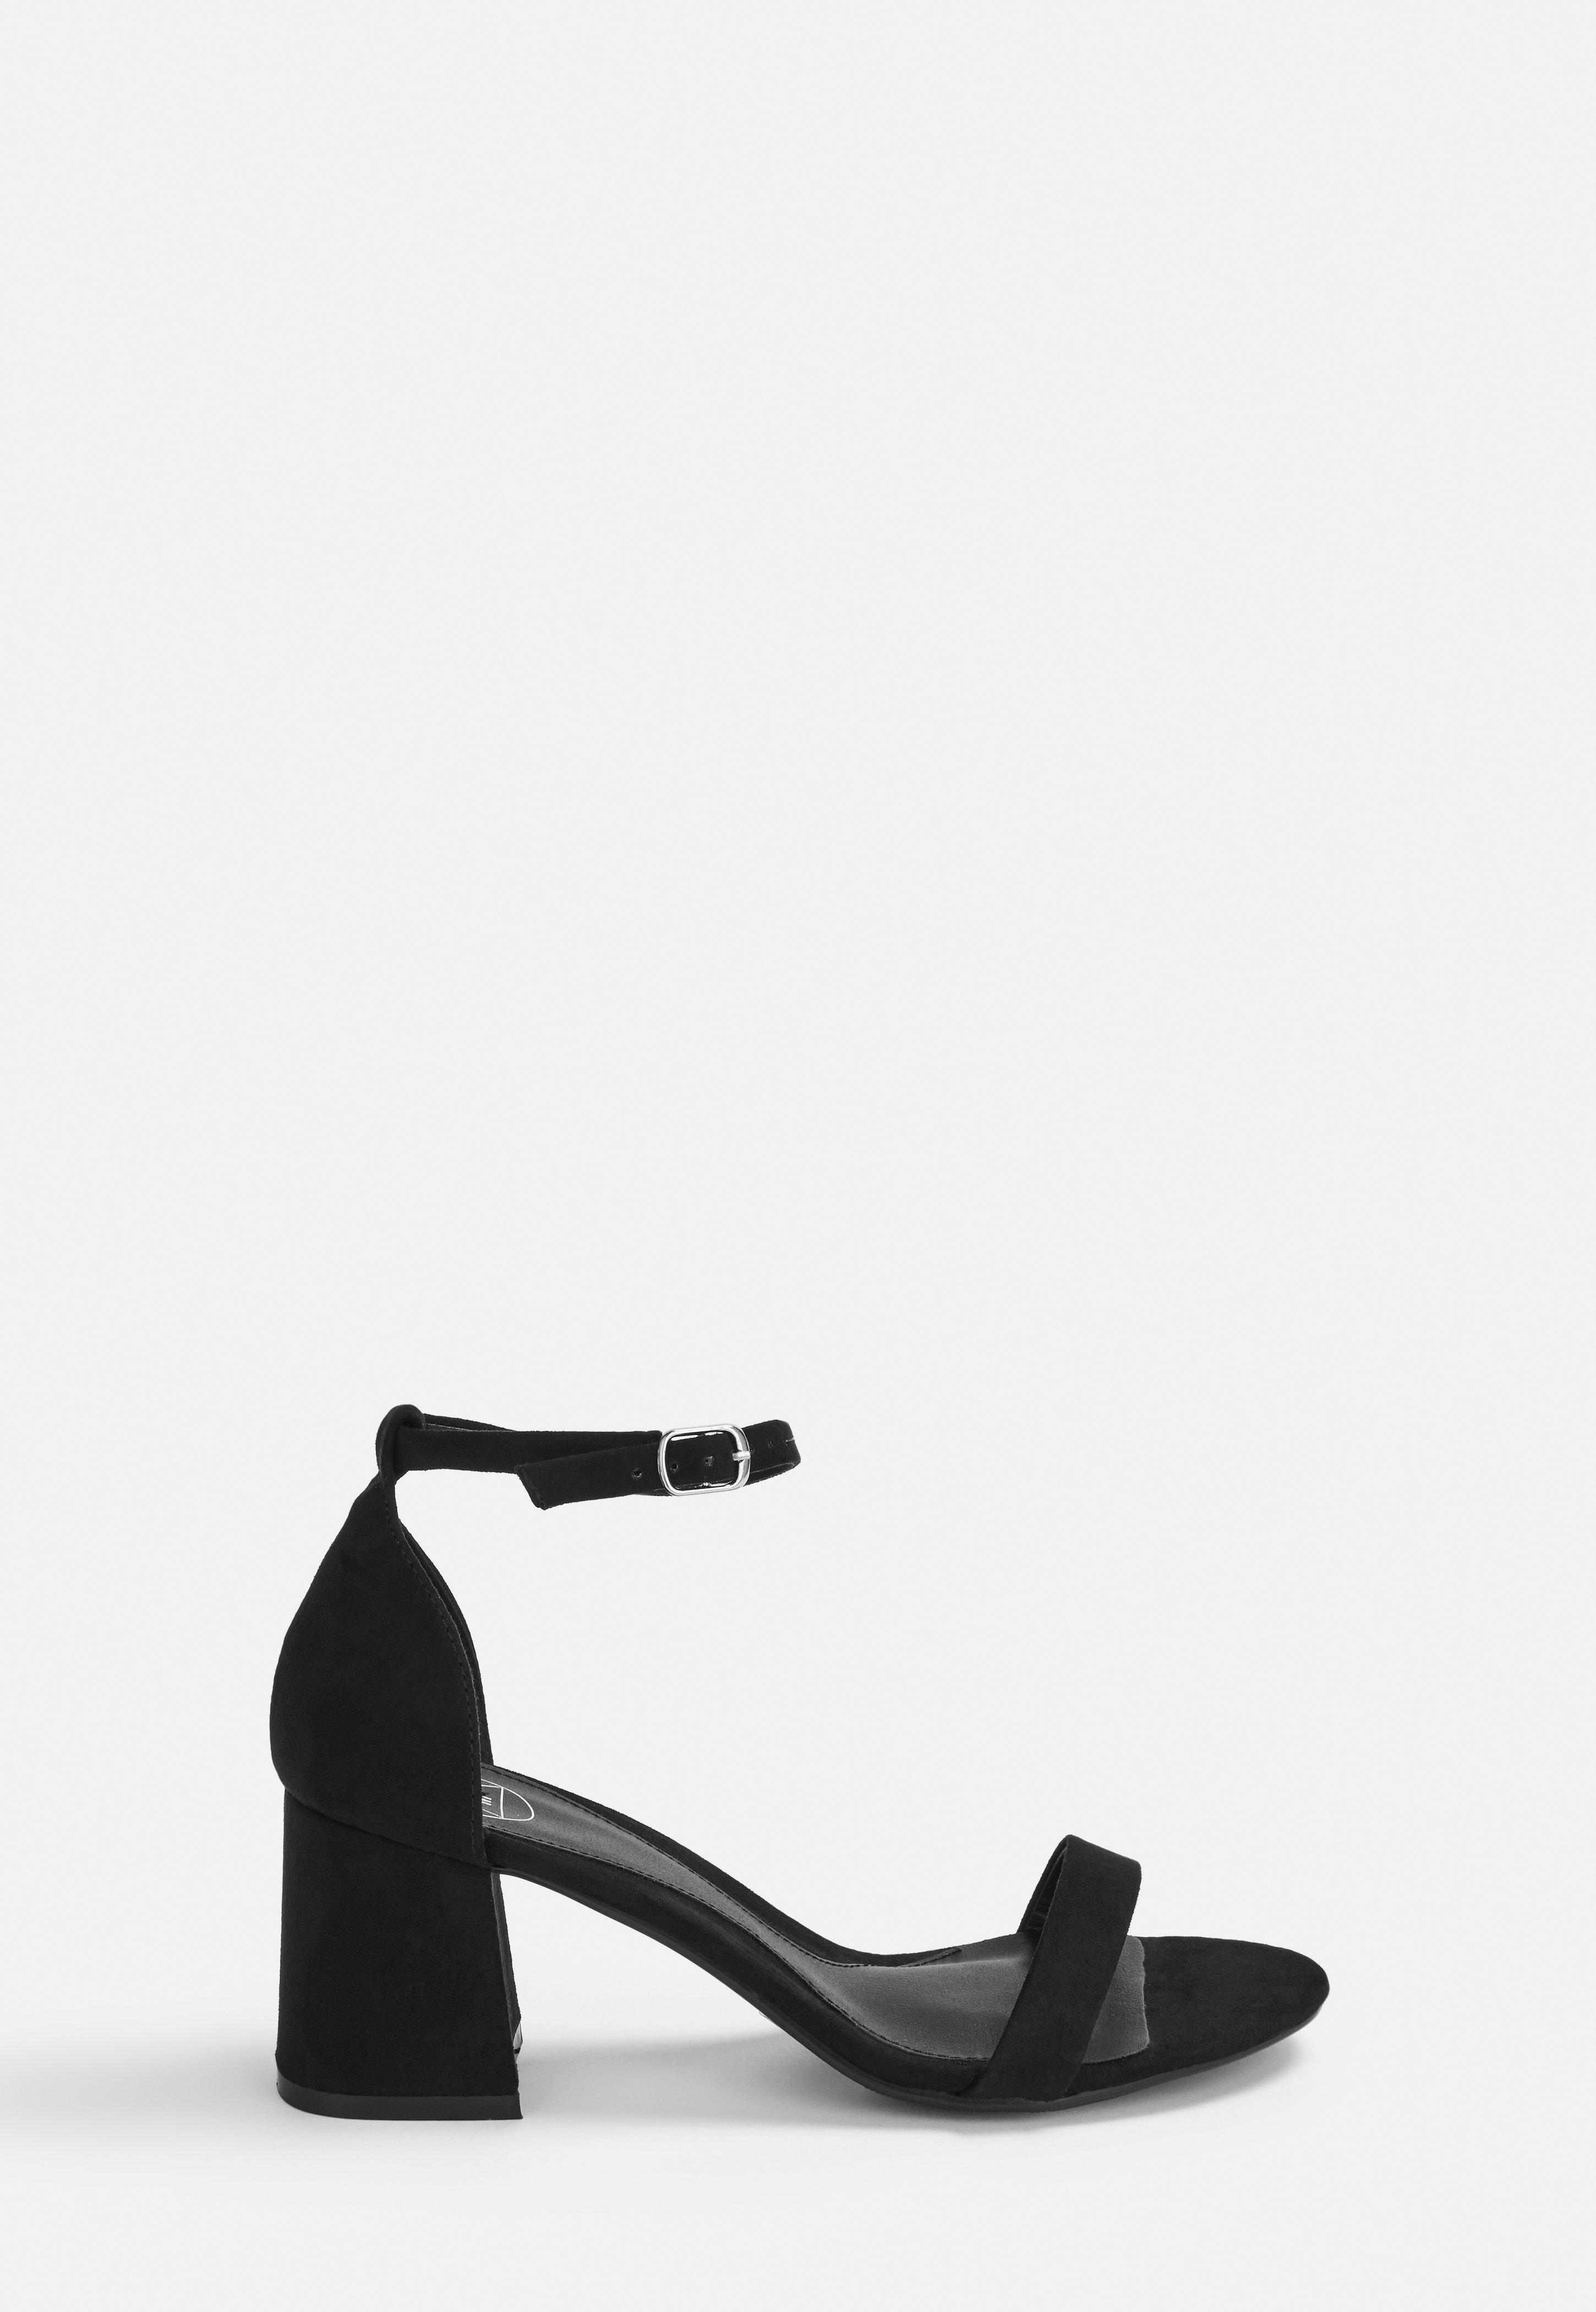 c9757fc0a91 Black Block Barely There Mid Heels